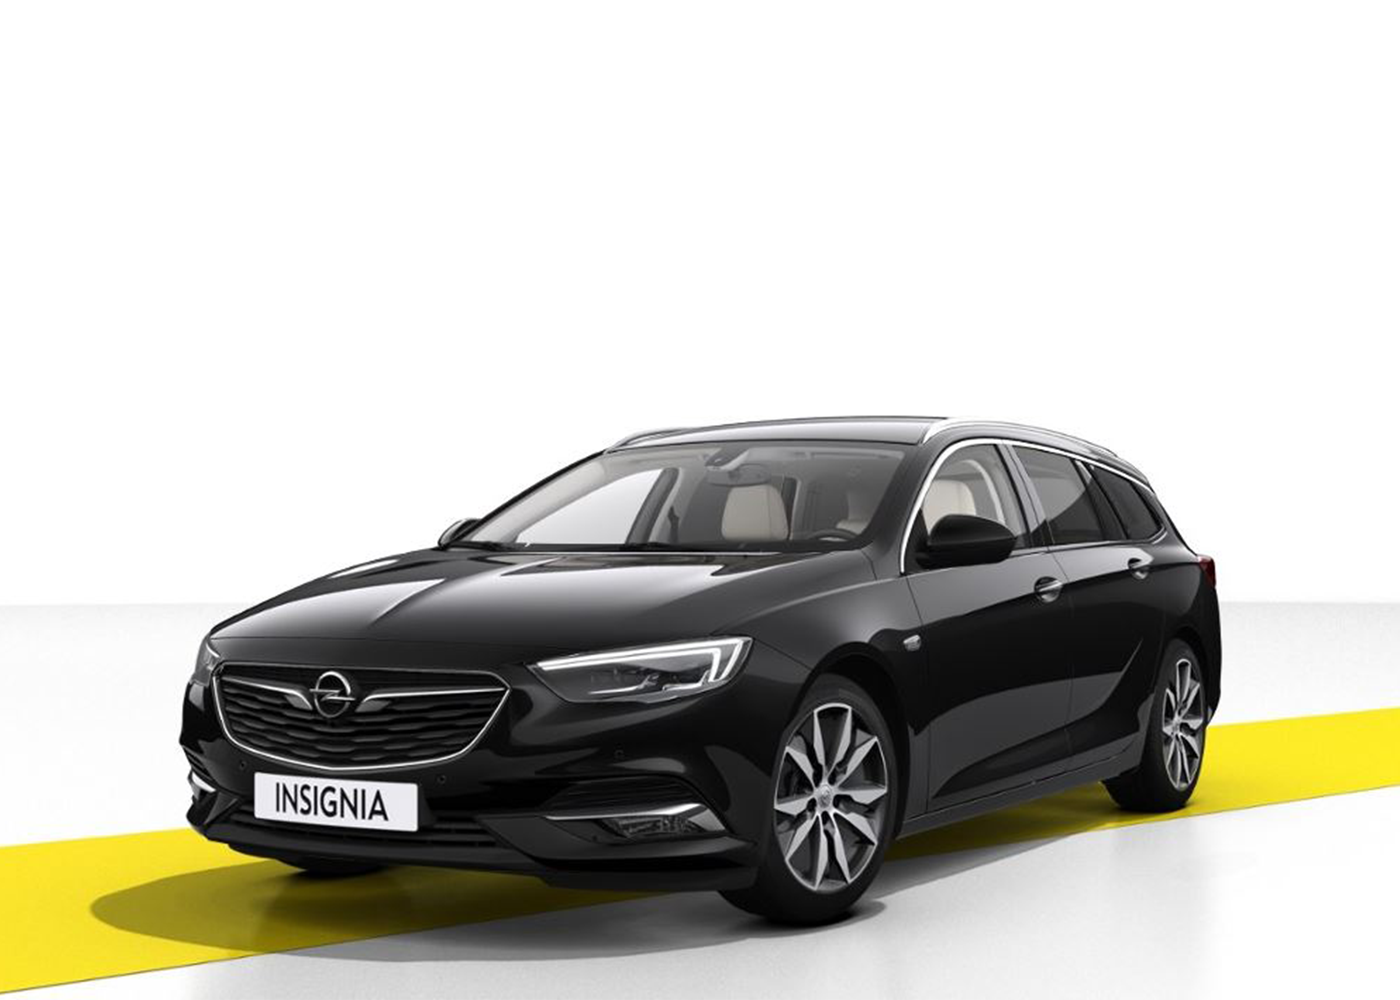 opel insignia 2 0 cdti s s awd sports tourer innovation. Black Bedroom Furniture Sets. Home Design Ideas